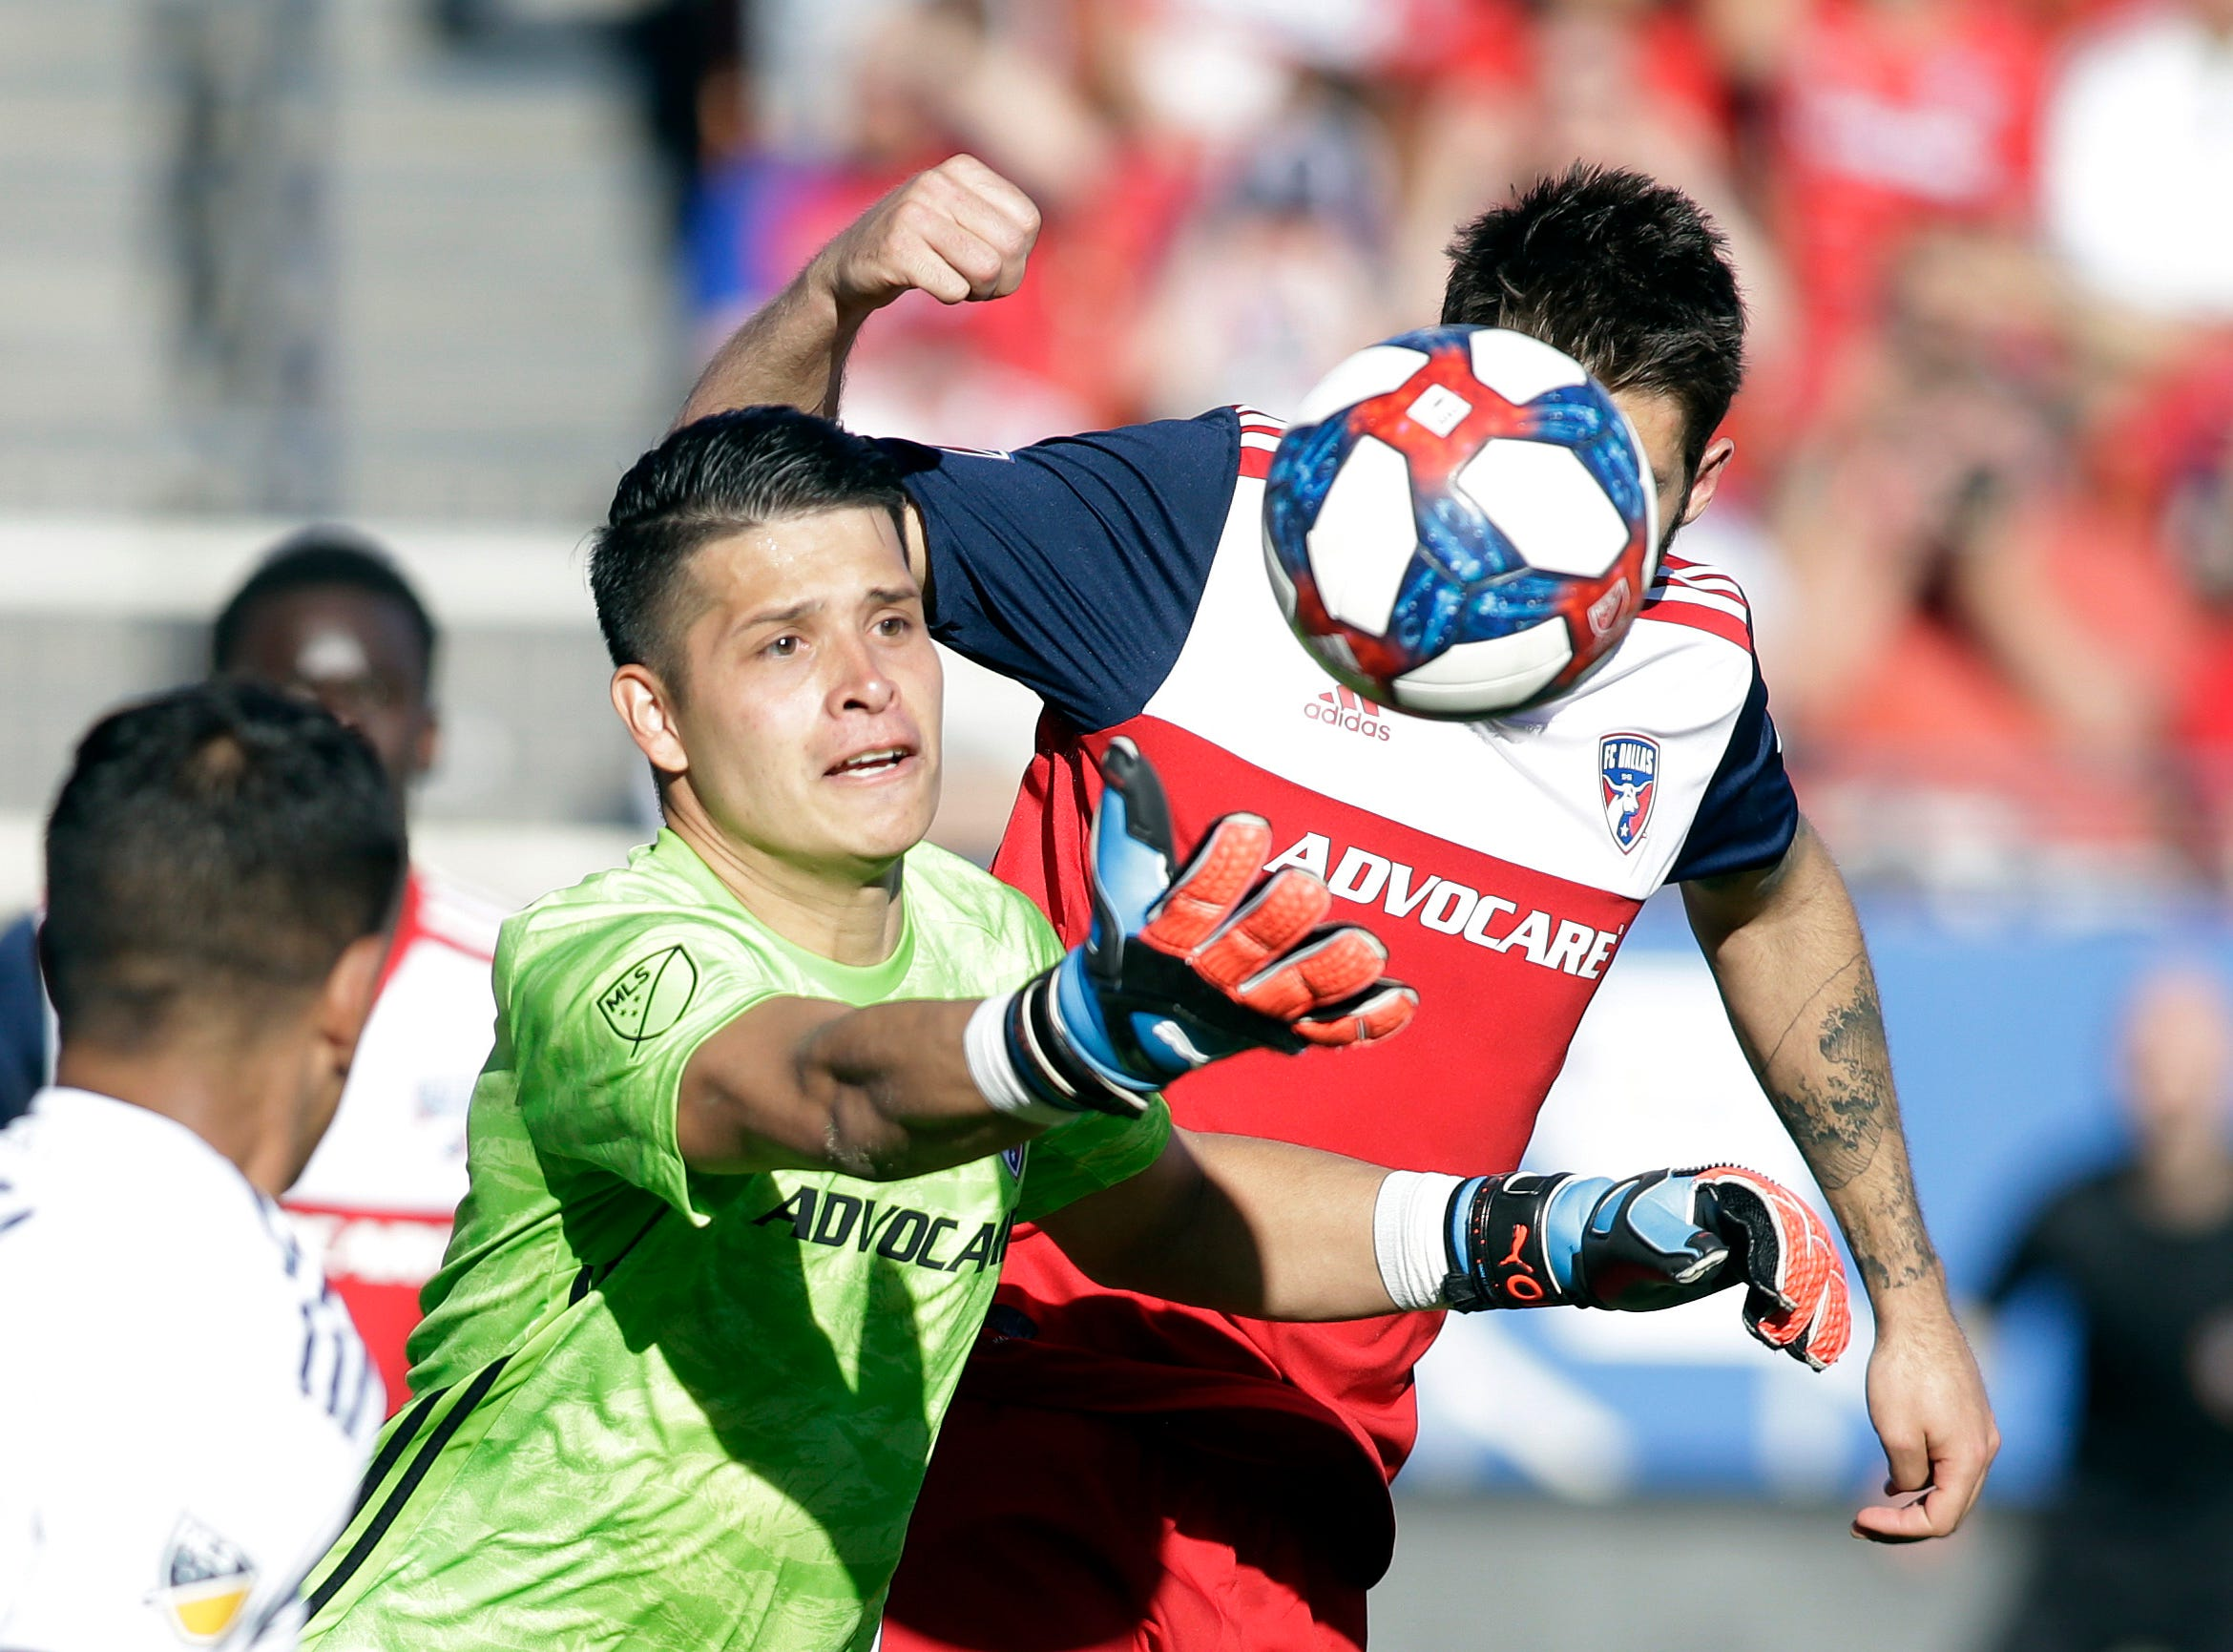 March 9: FC Dallas goalkeeper Jesse Gonzalez (1) grabs the ball in the first half against the Los Angeles Galaxy at Toyota Stadium.